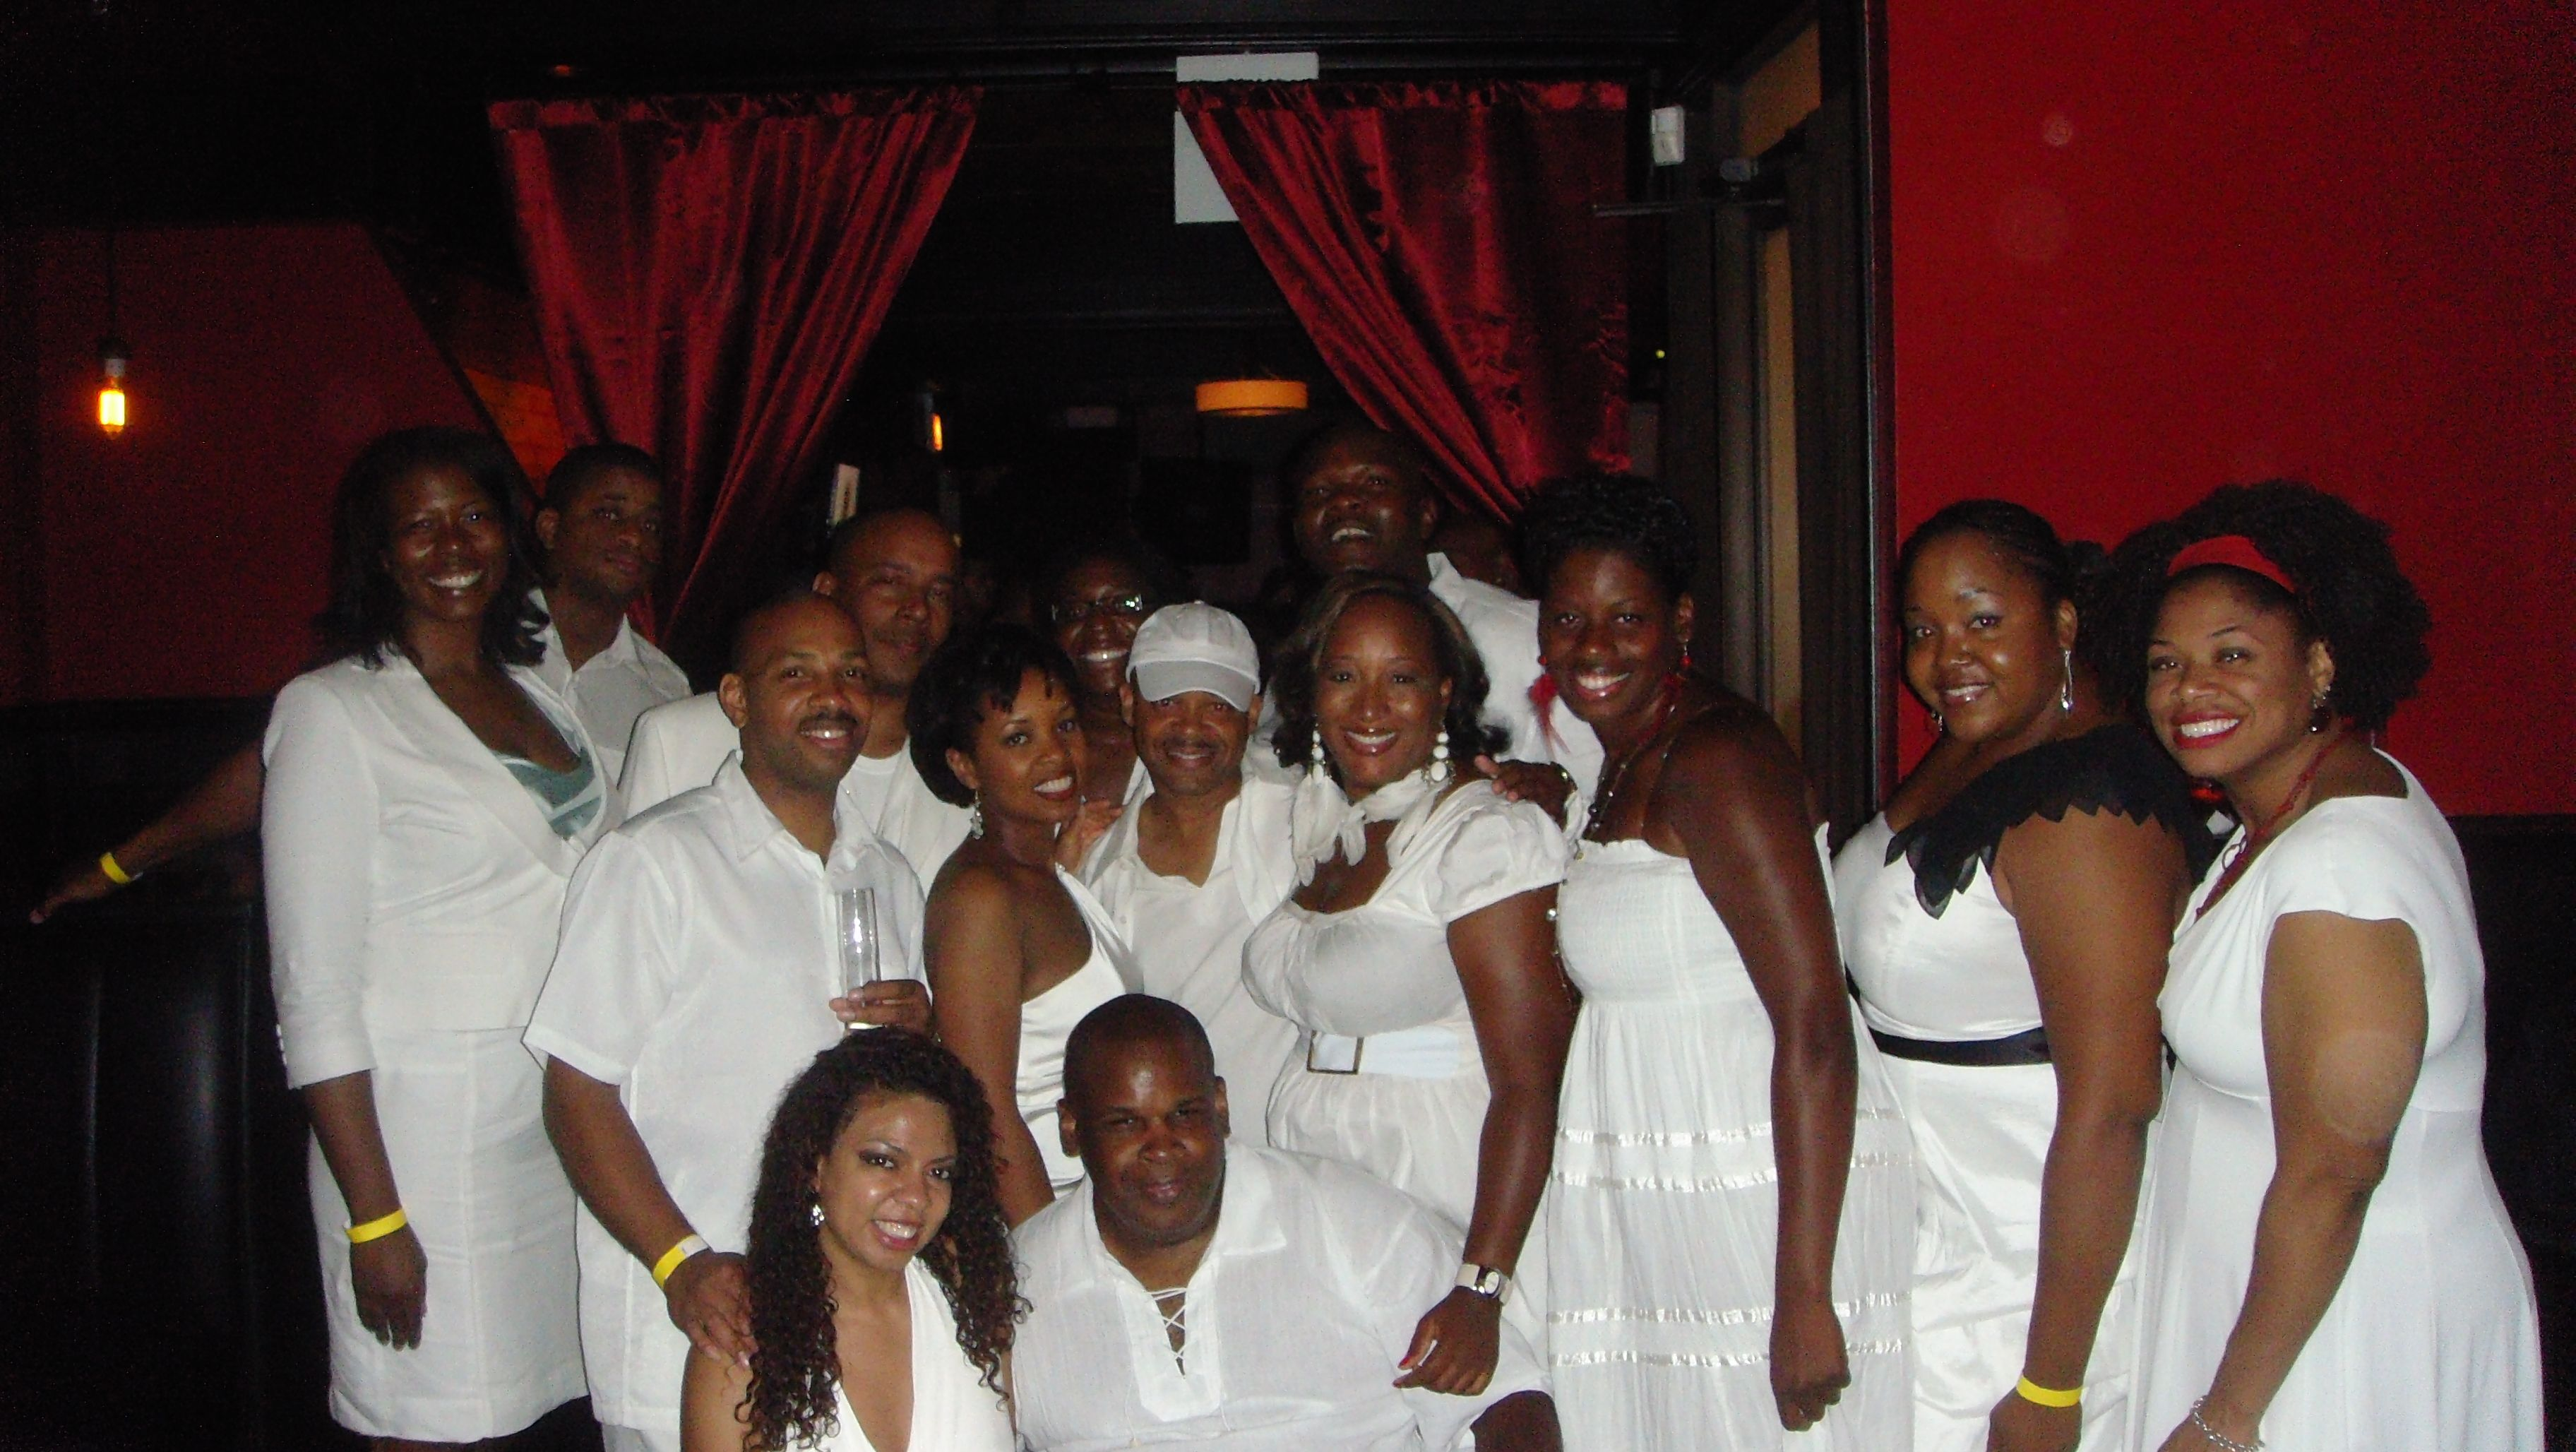 Pin all white party decorations image search results on for Images of all white party decorations